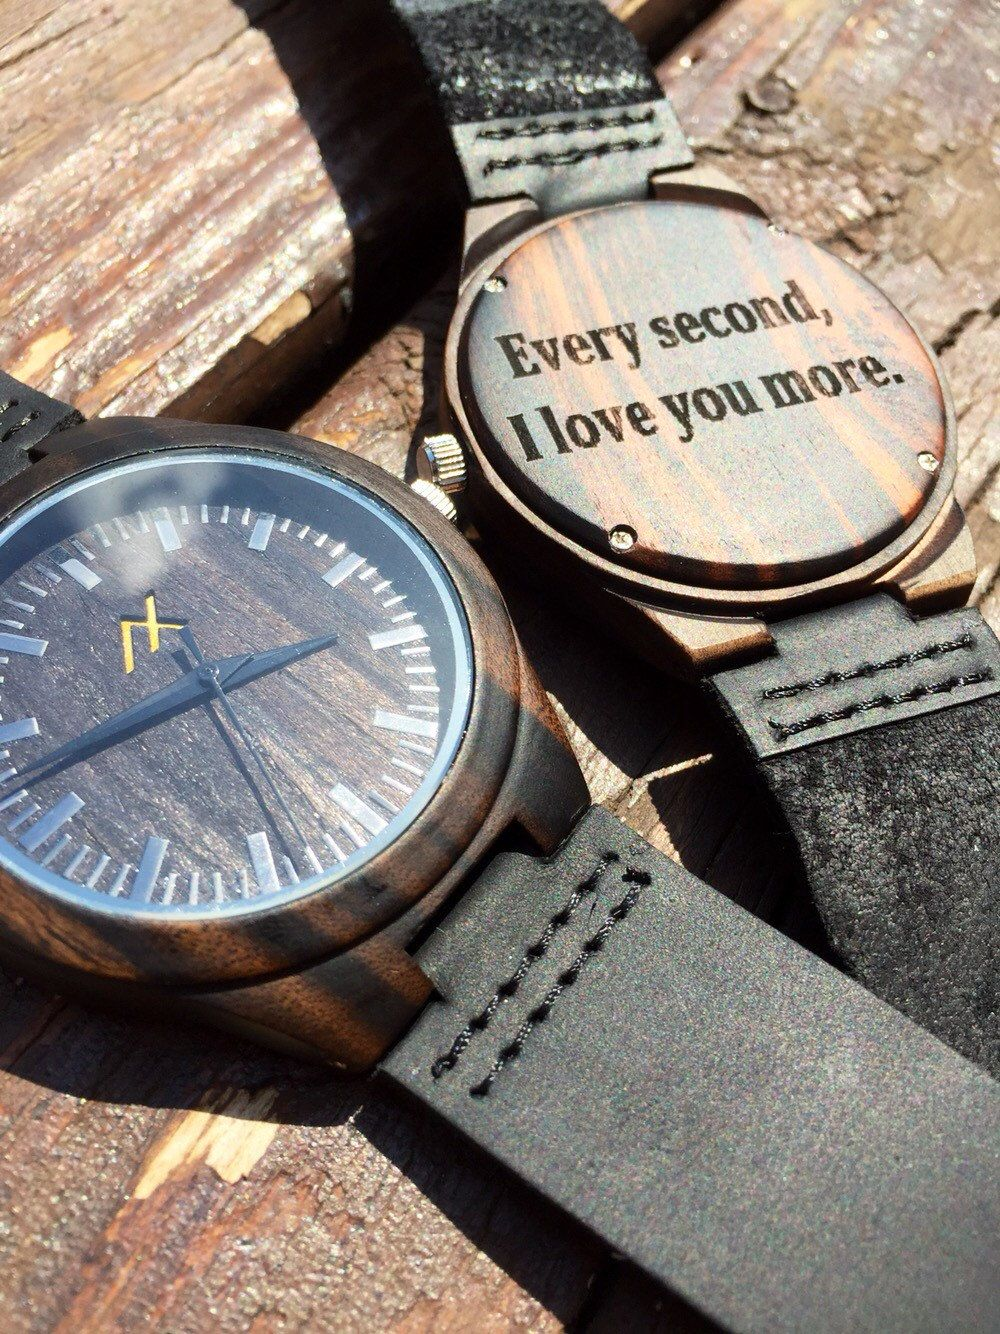 additional these unique lightweight engrave are only watch materials timber wood watches engraved cost a but eco custom created as an can added initials not friendly feature name tahoe with at you functional